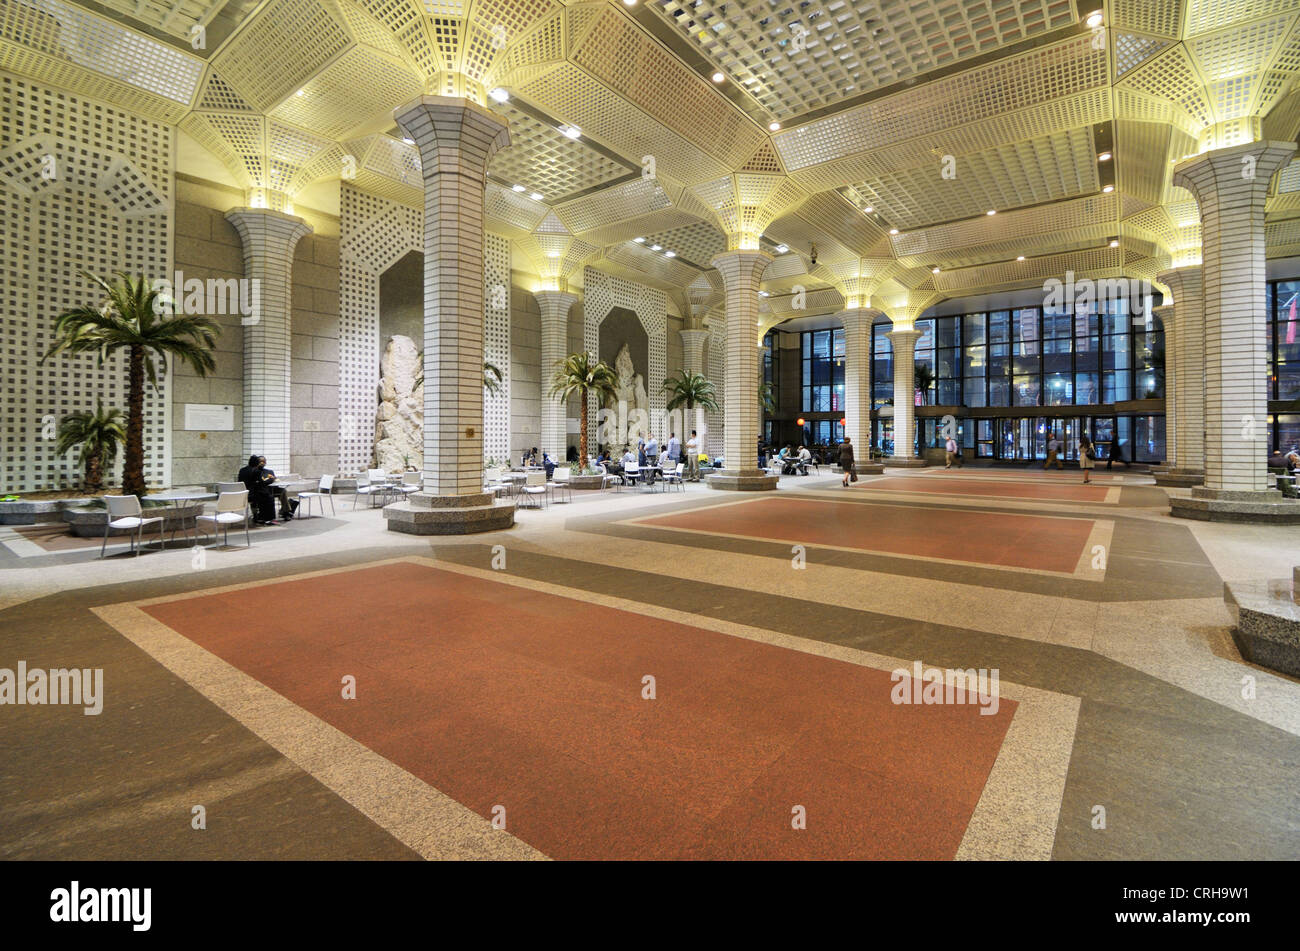 60 Wall St Atrium in New York City. - Stock Image